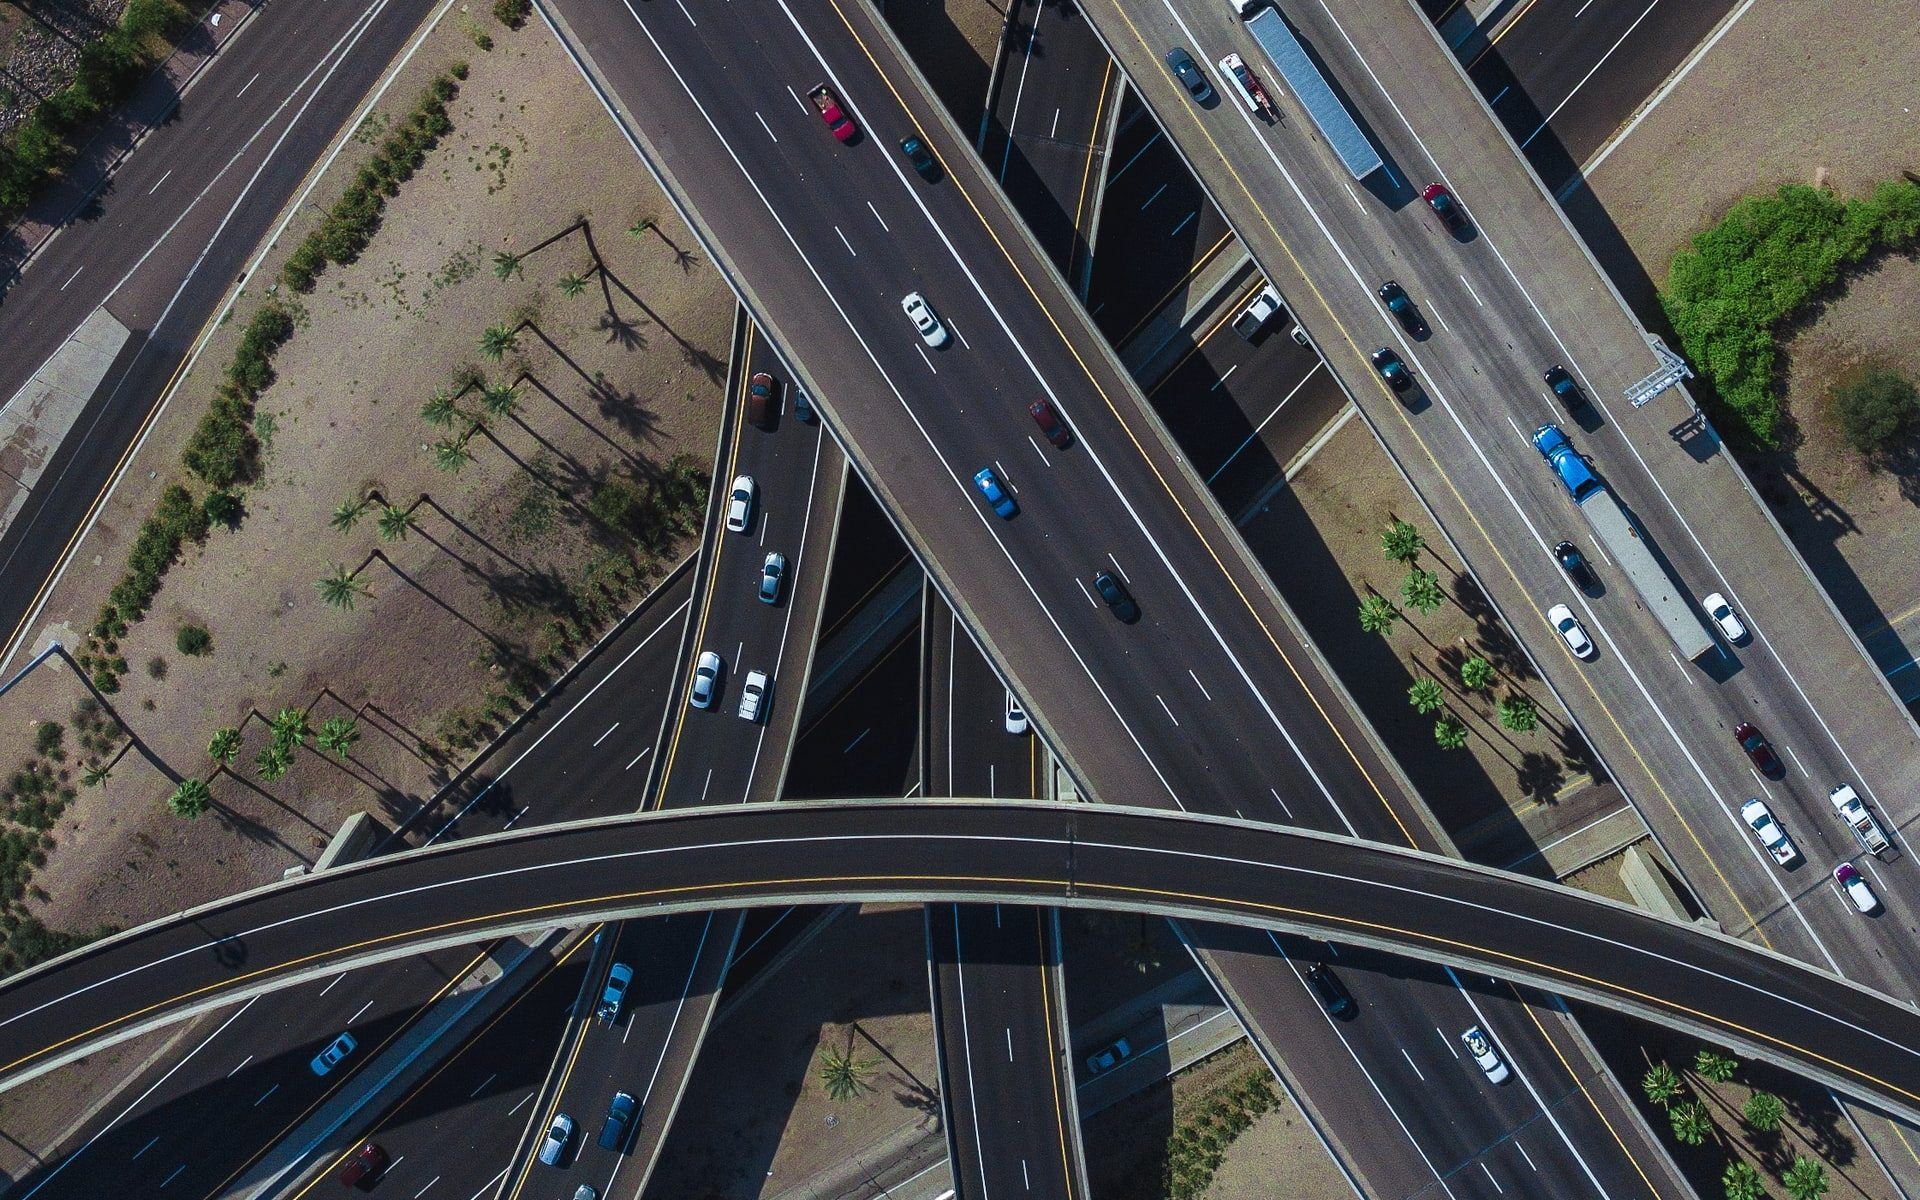 Budget 2021: Where will the $10b national infrastructure funding go?